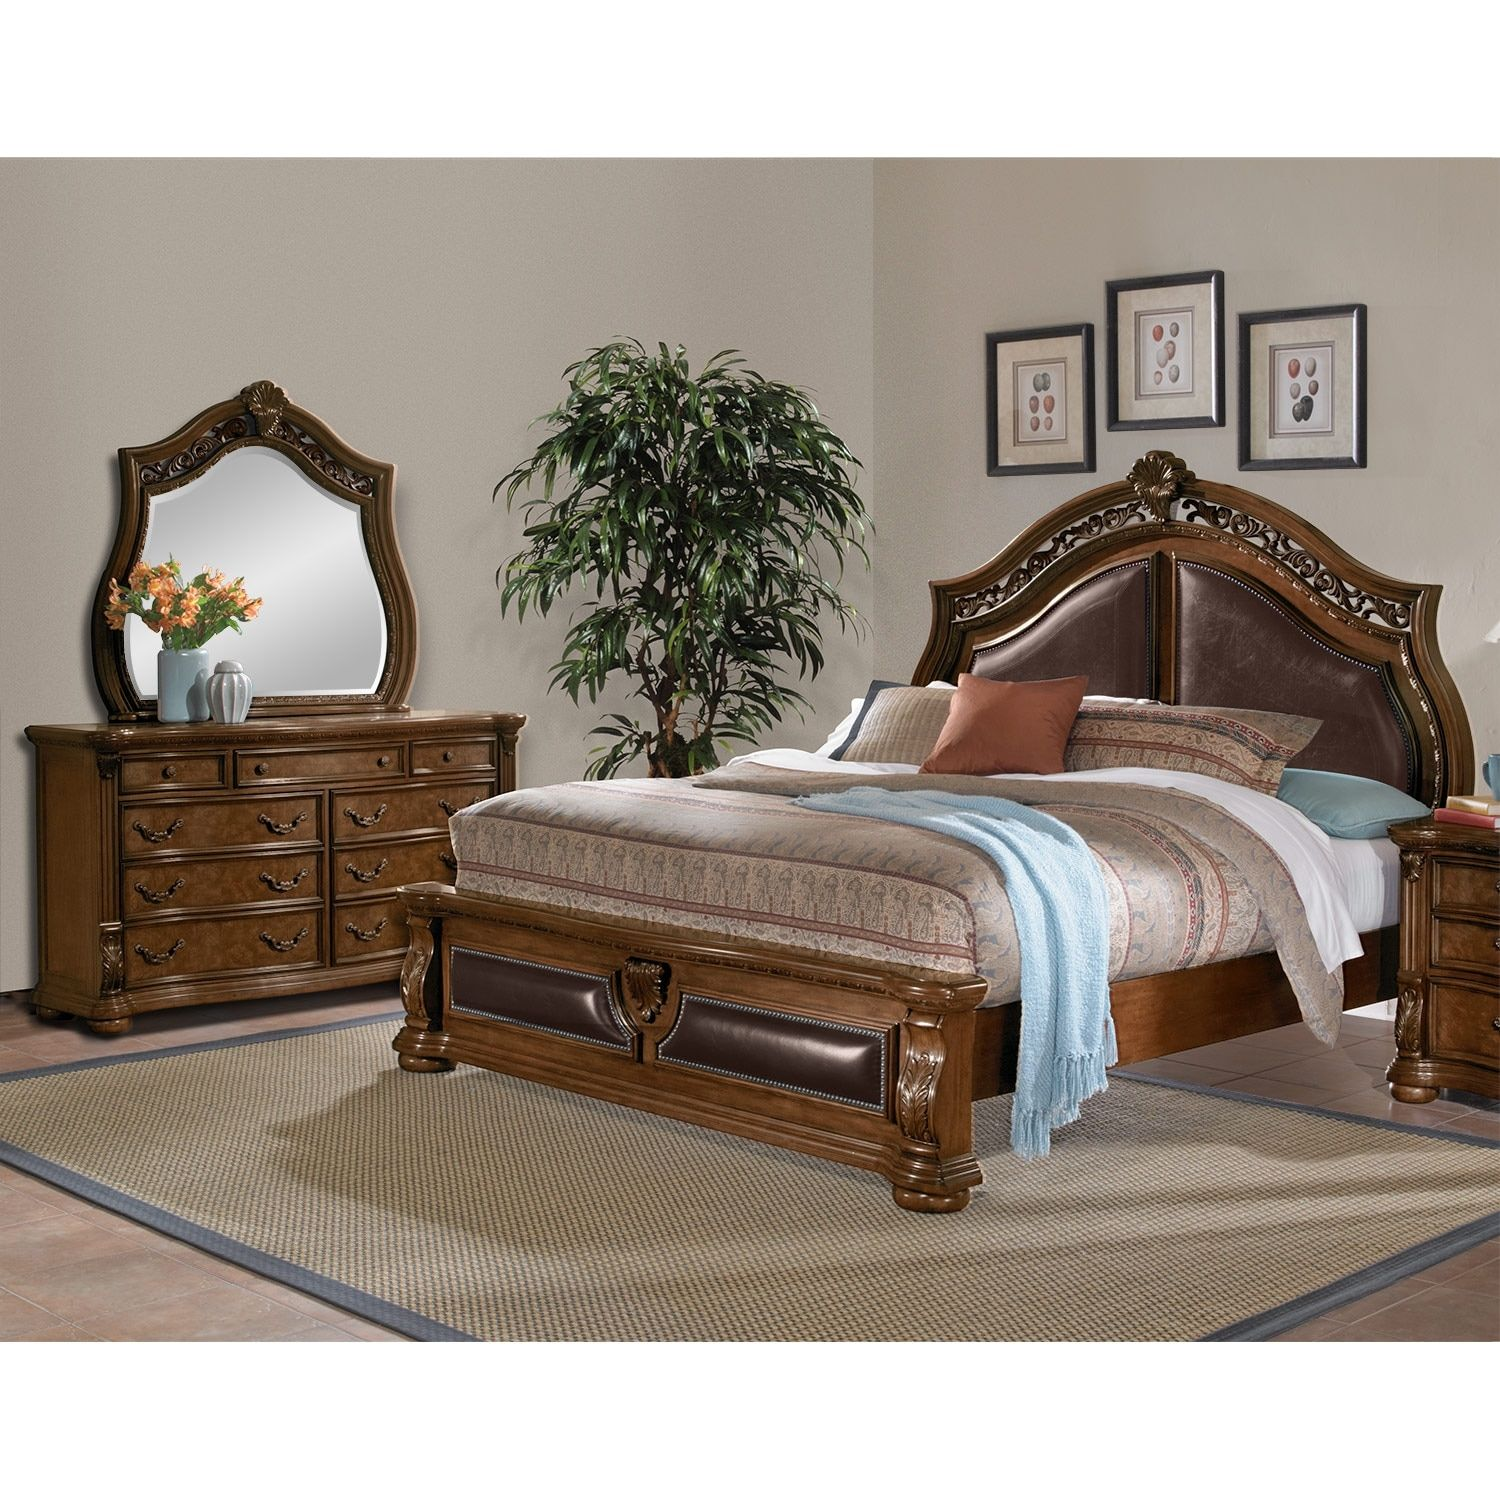 Genial Morocco 5 Piece King Upholstered Bedroom Set   Pecan